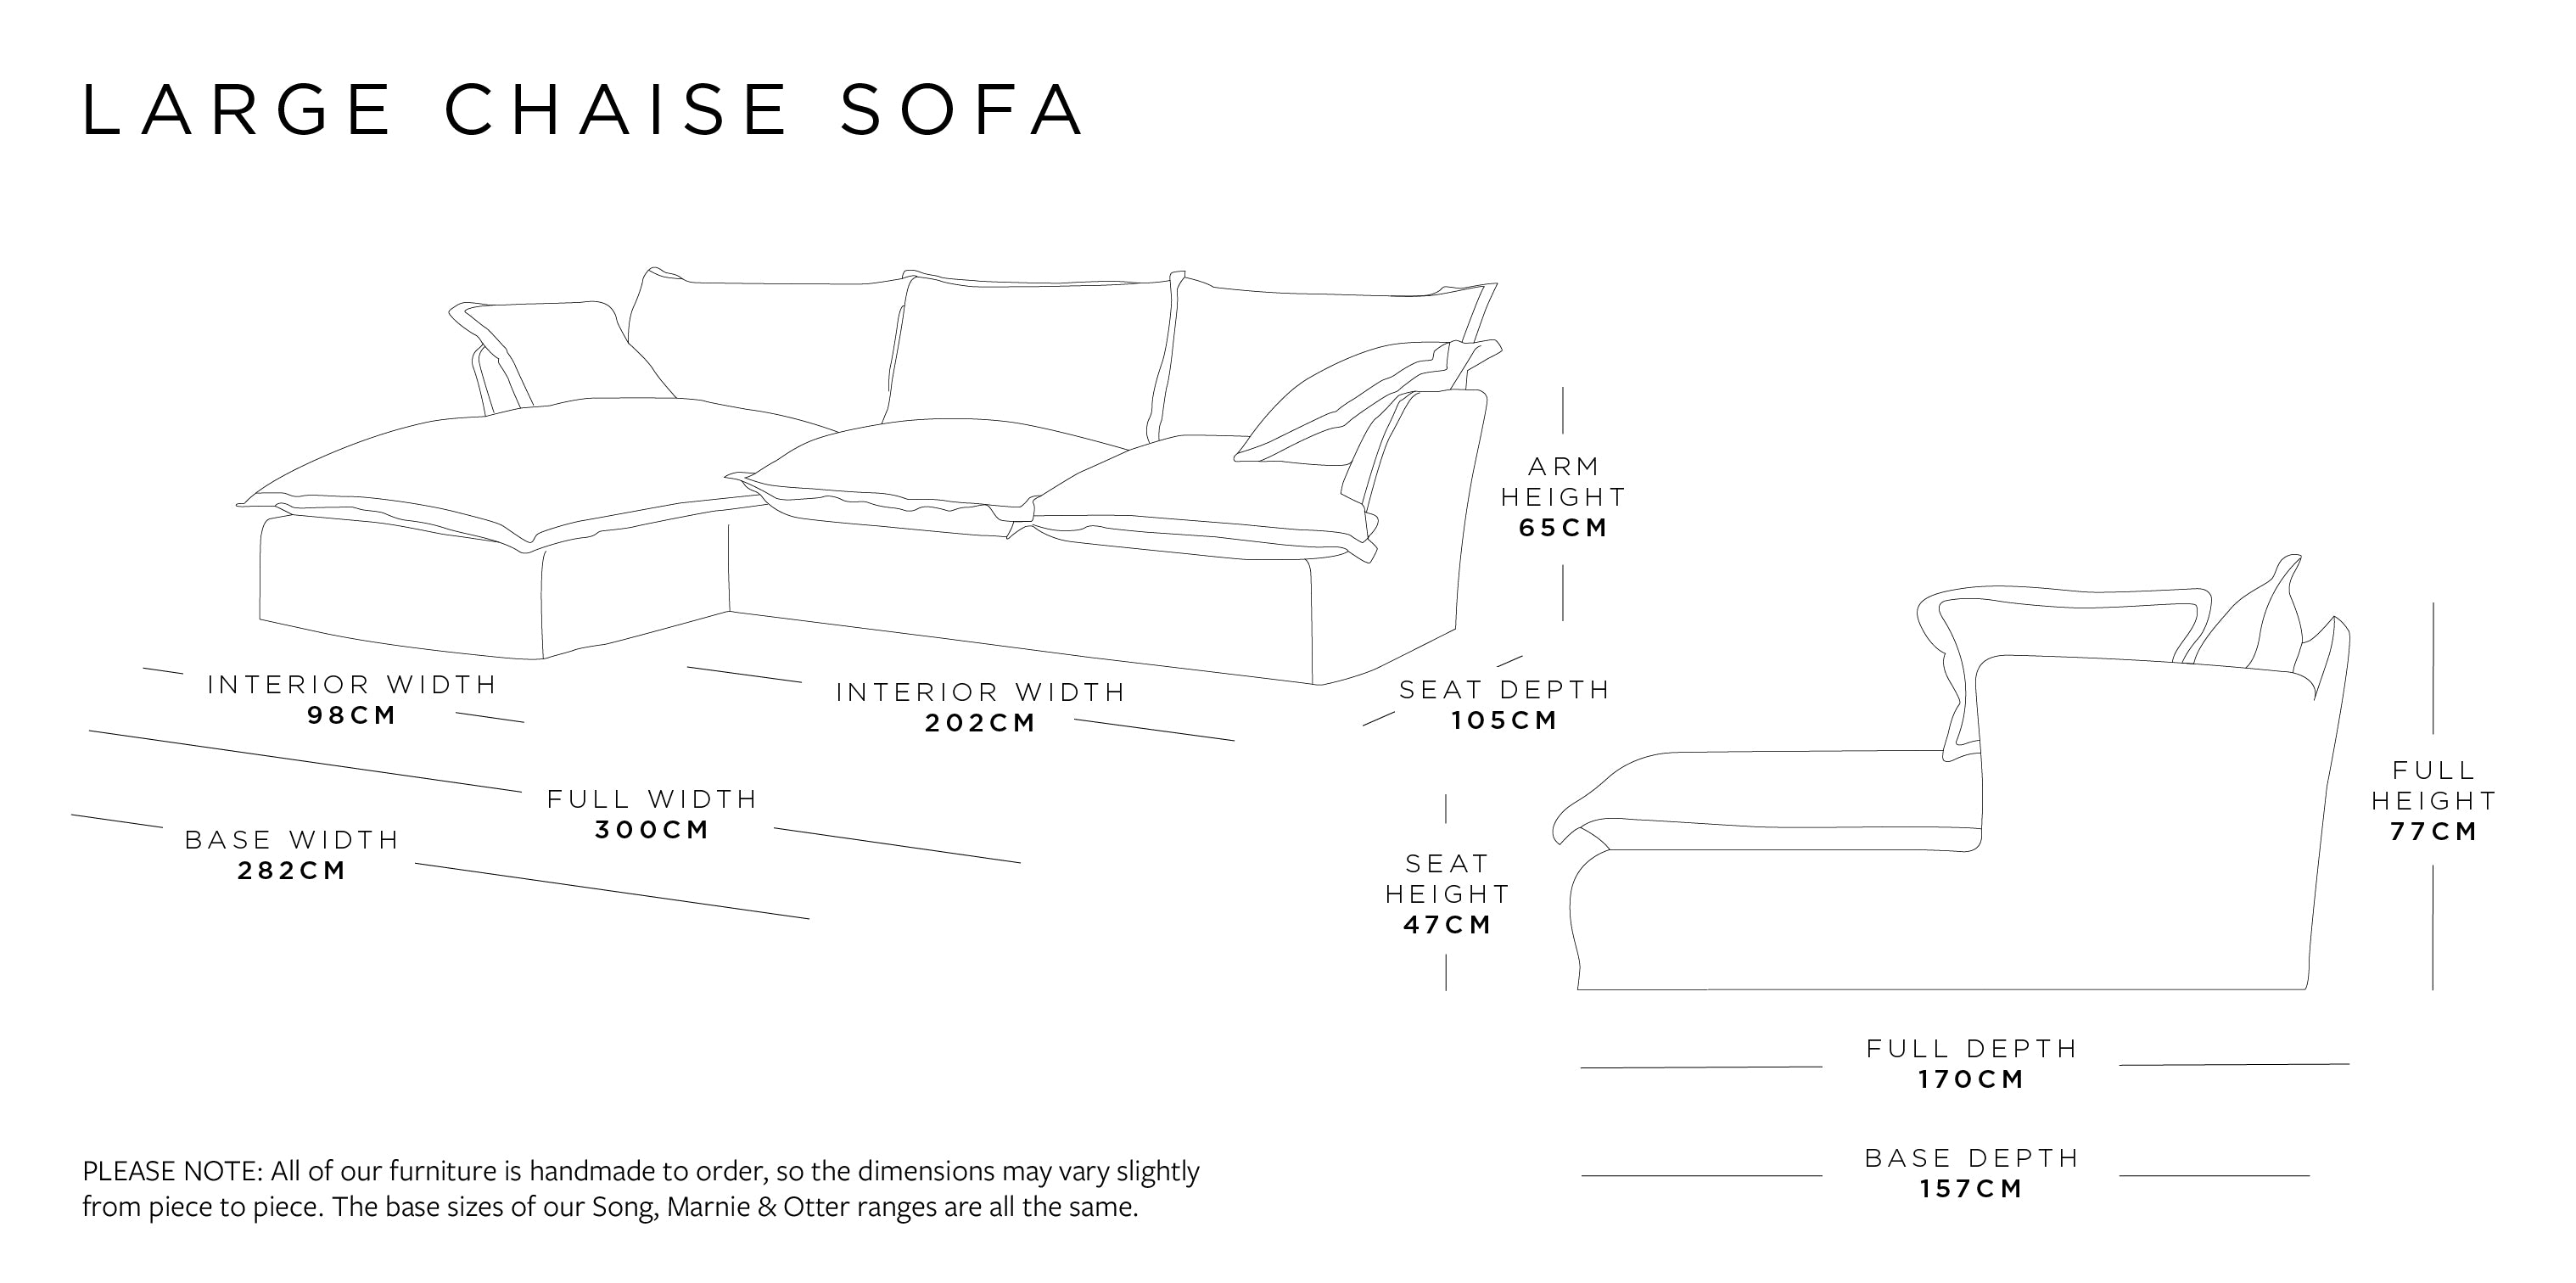 Chaise Large Sofa Dimensions